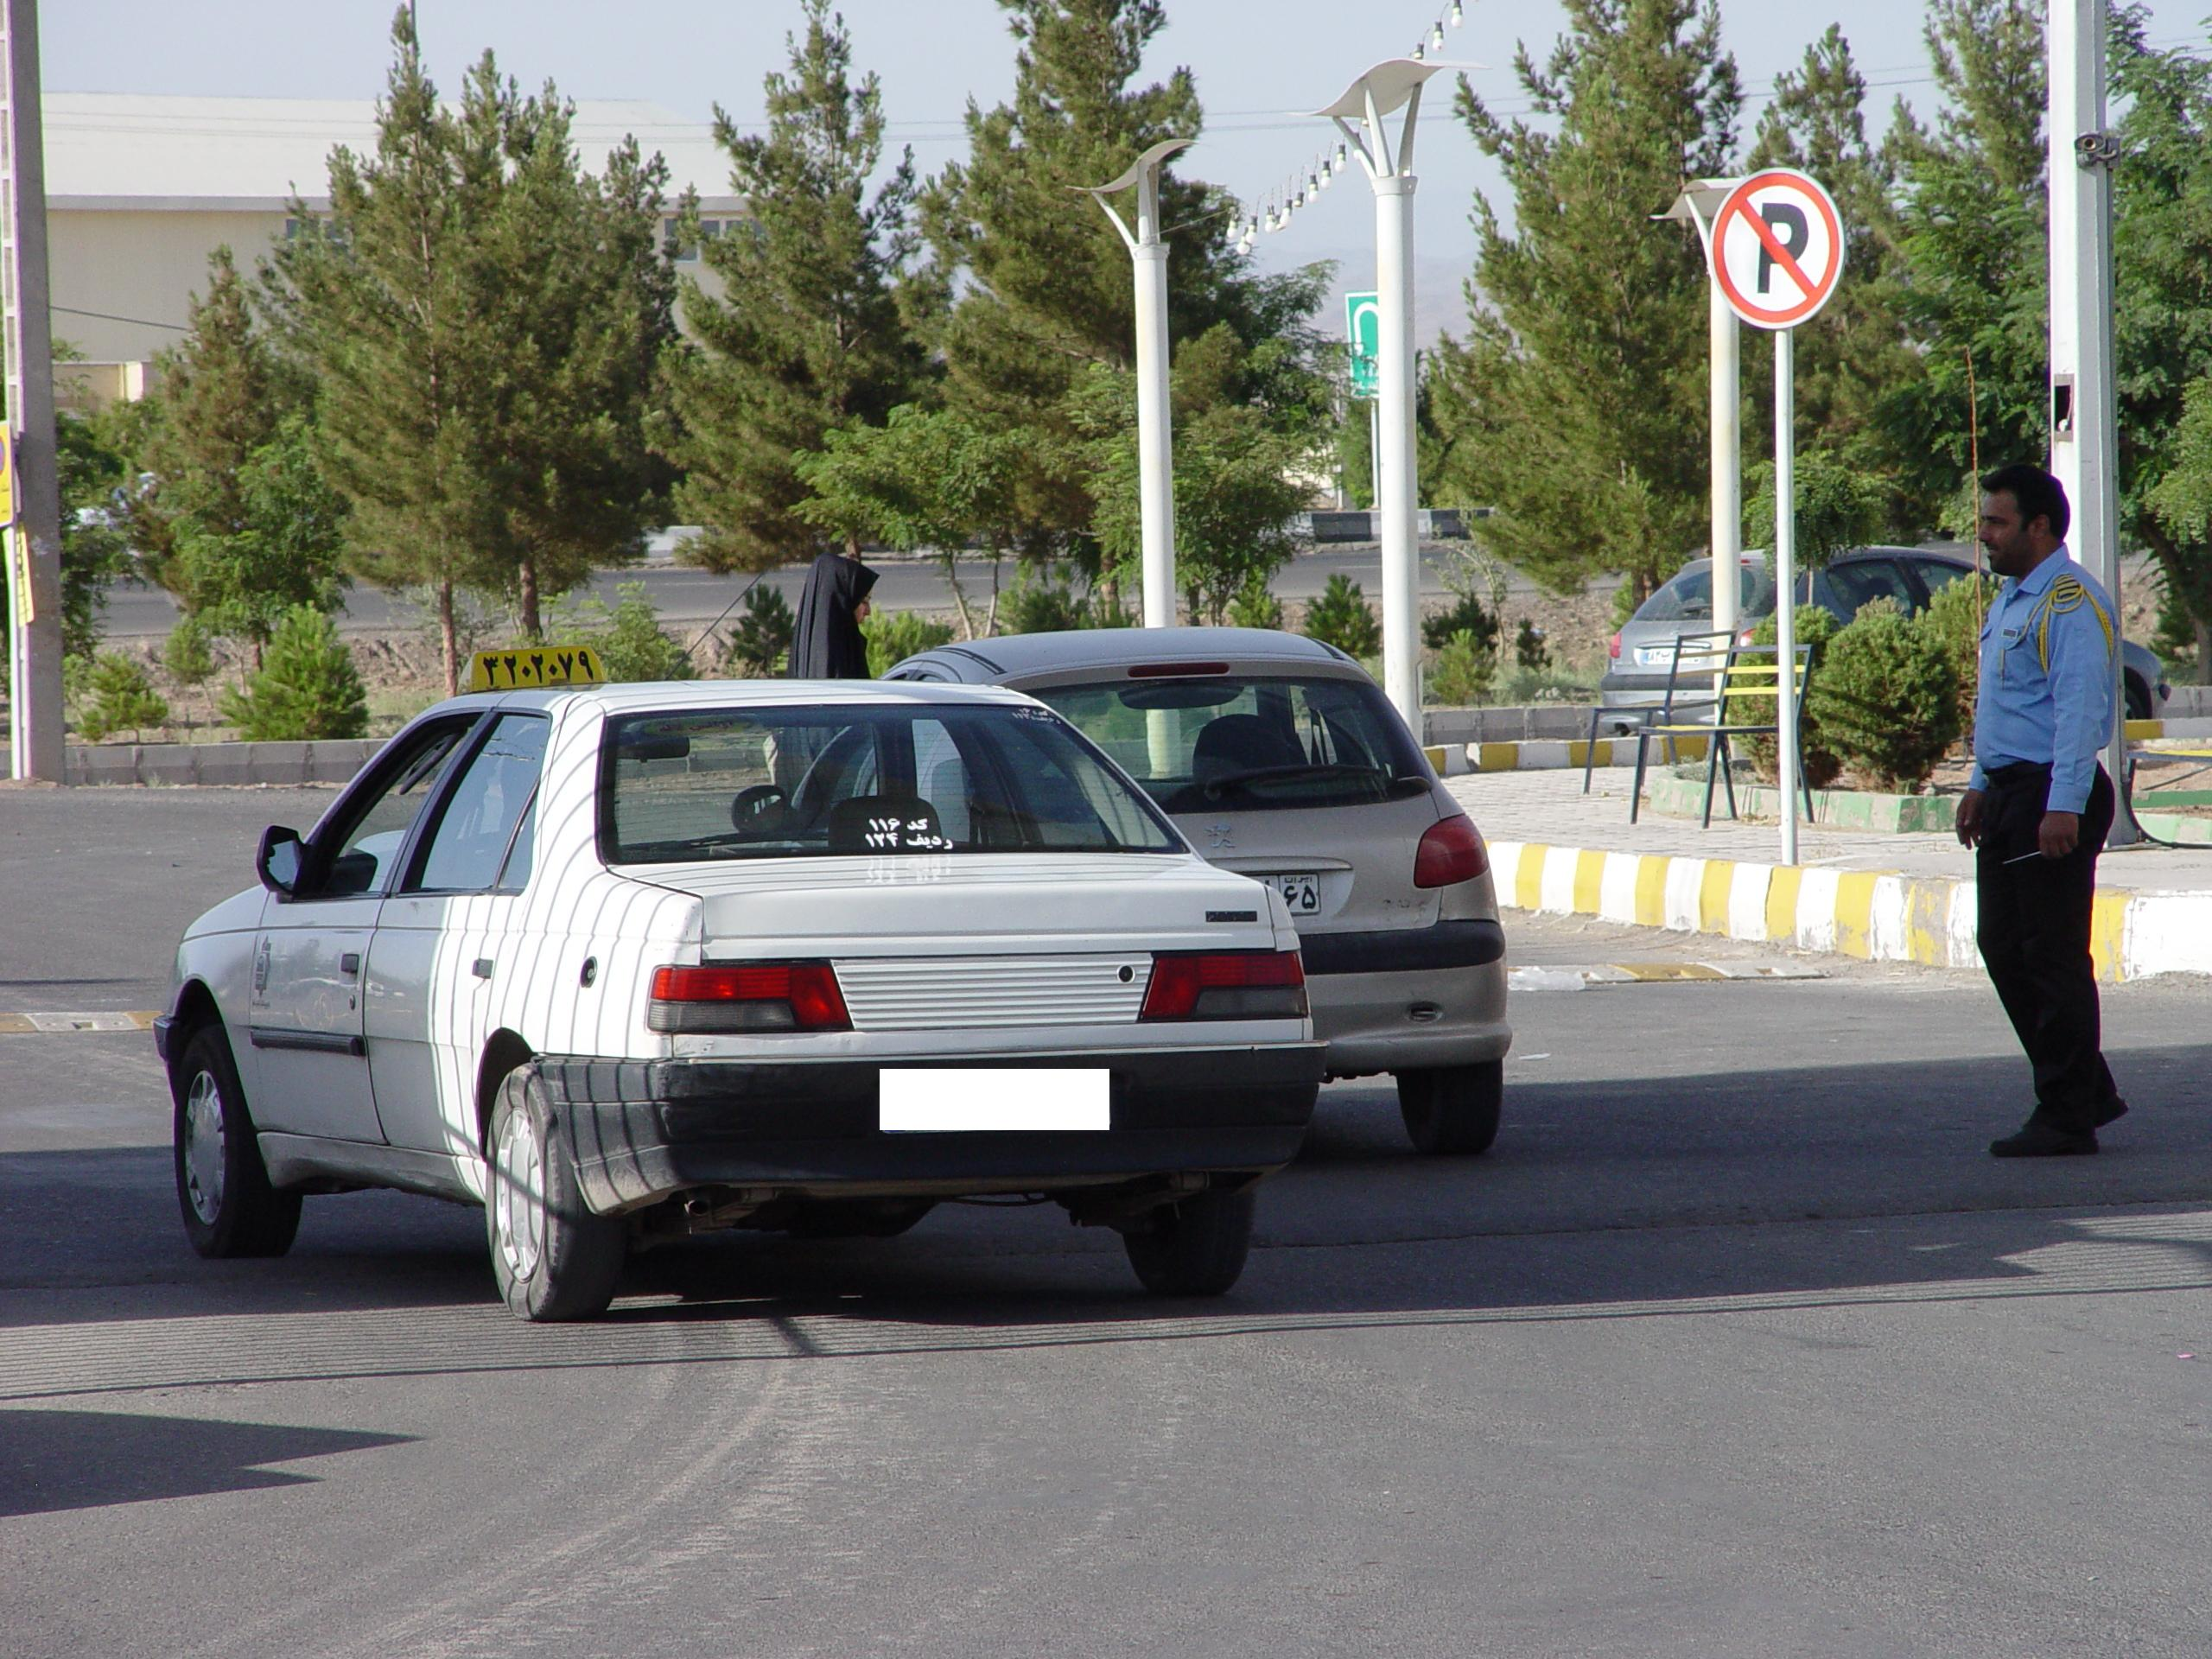 iranian license plate detection - OpenCV Q&A Forum